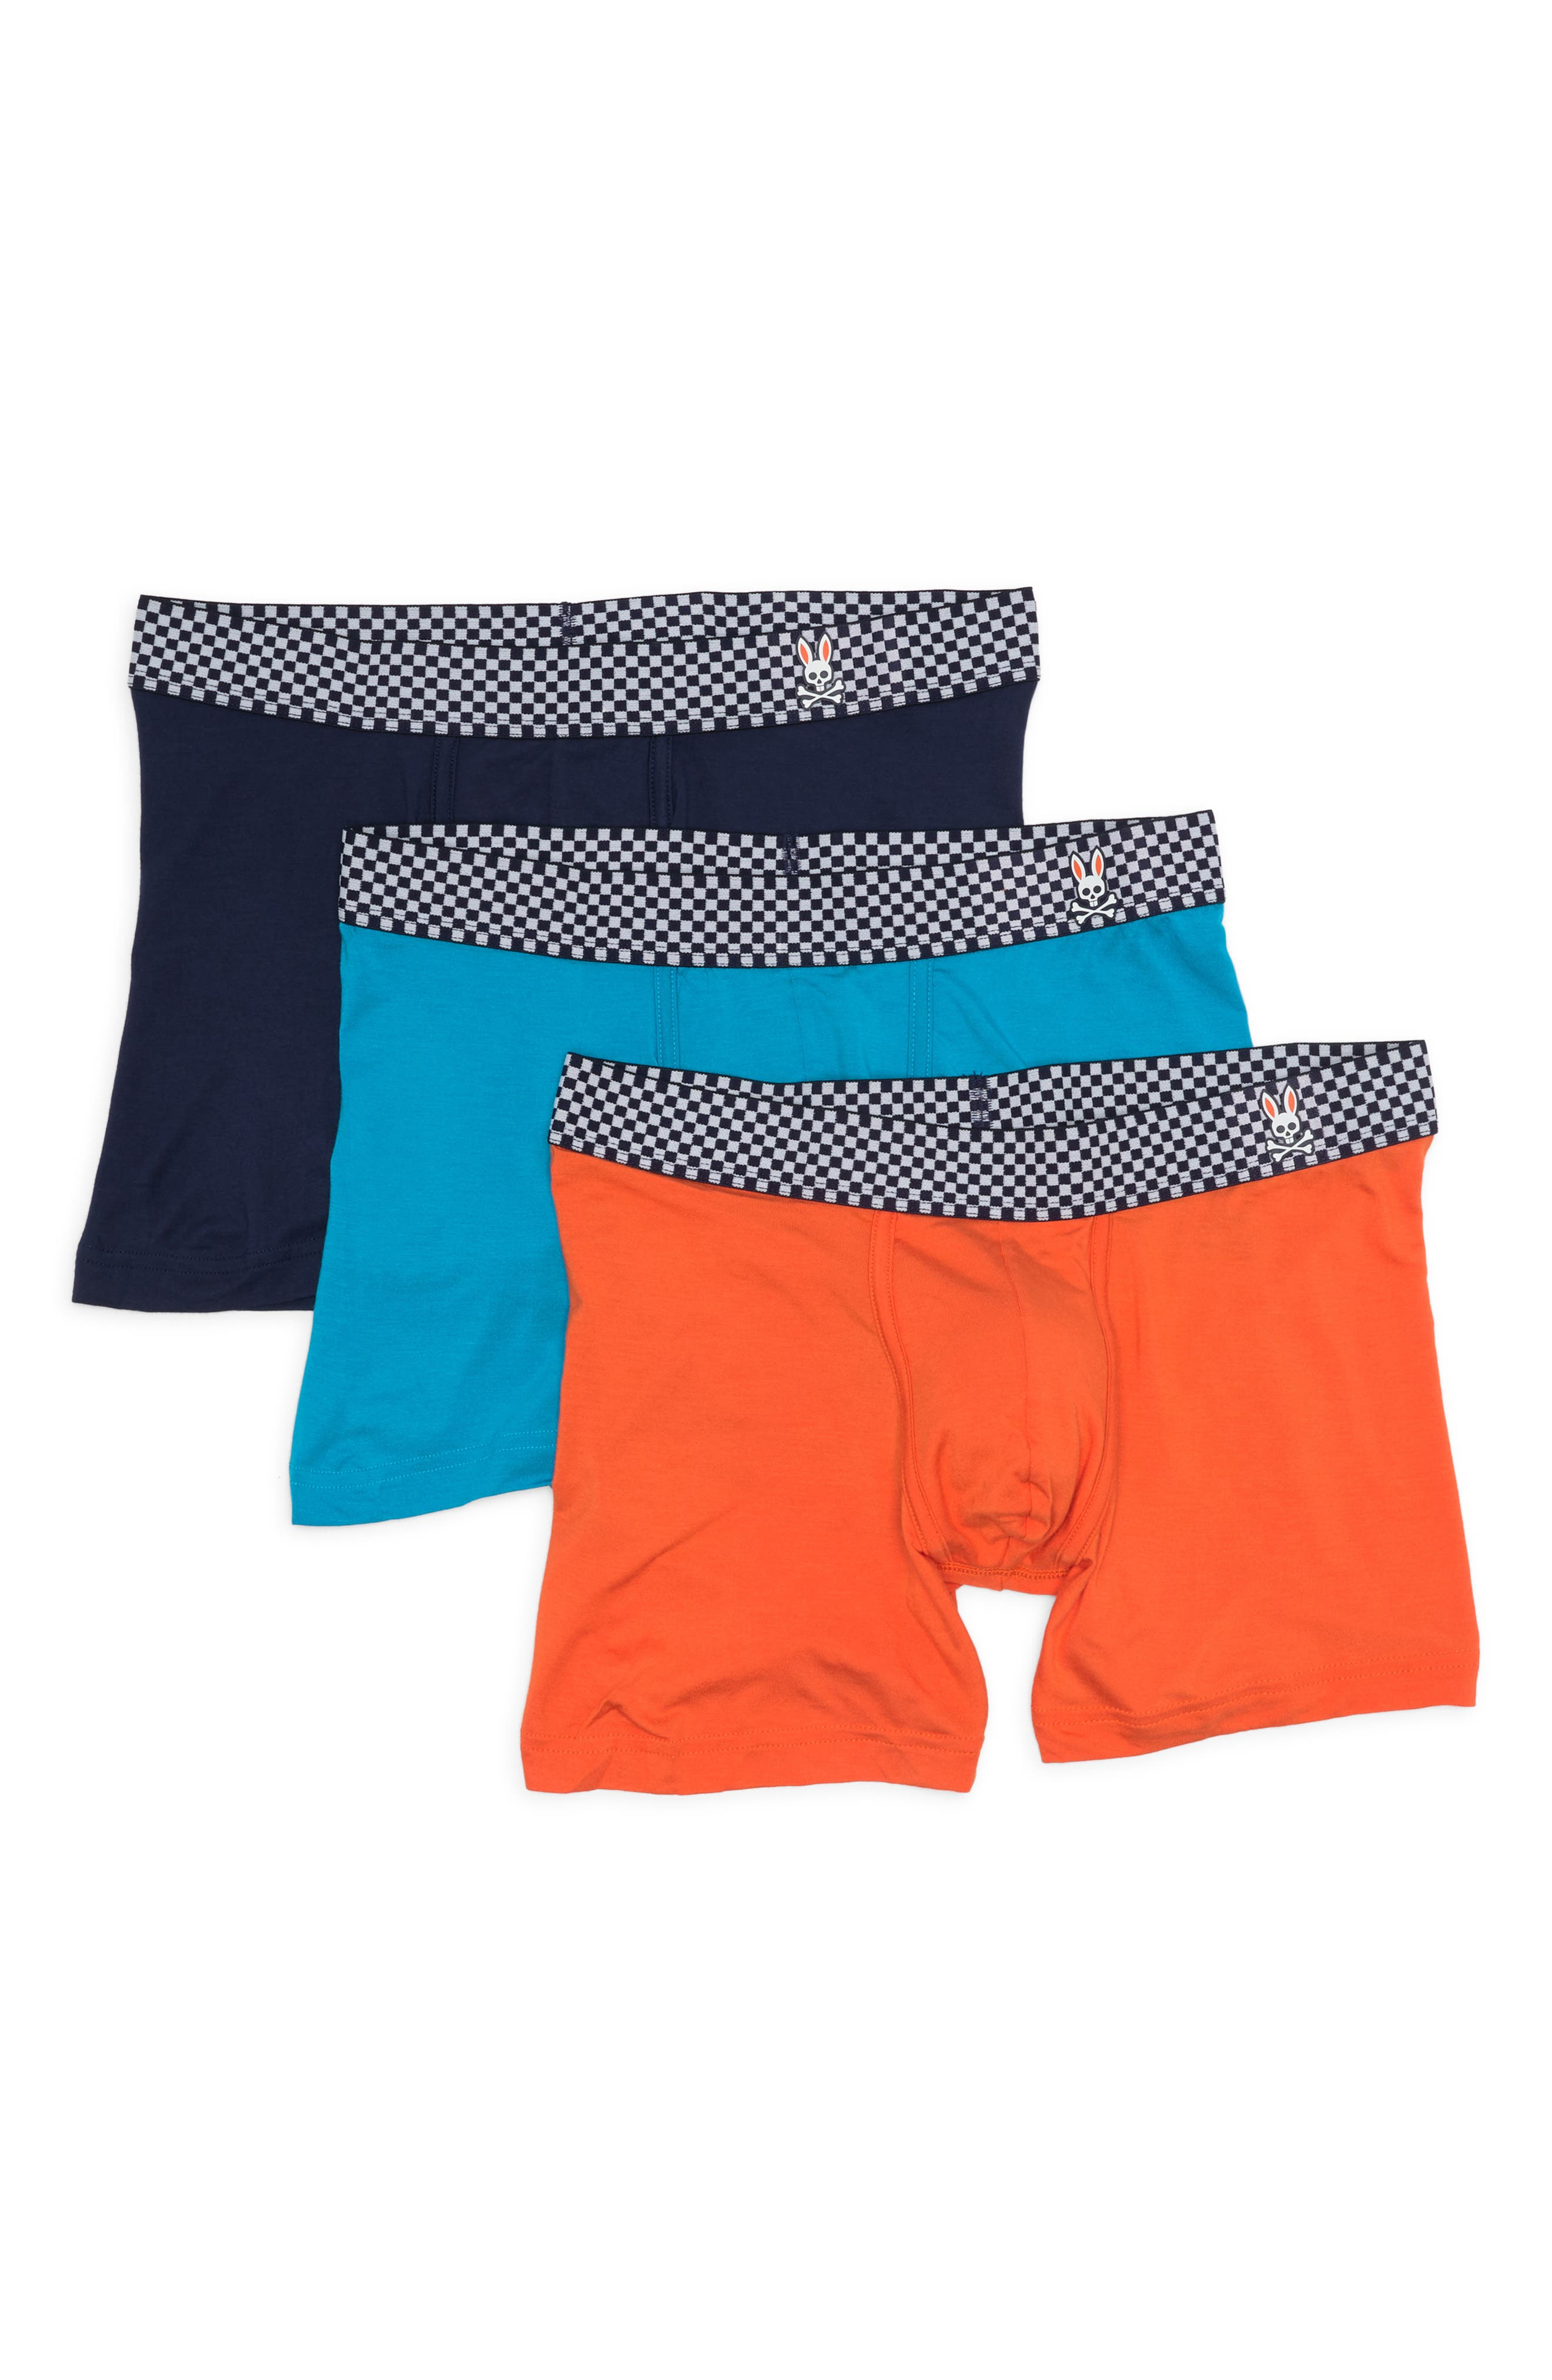 Psycho Bunny Mens Modern Luxe Trunks 3-Pack